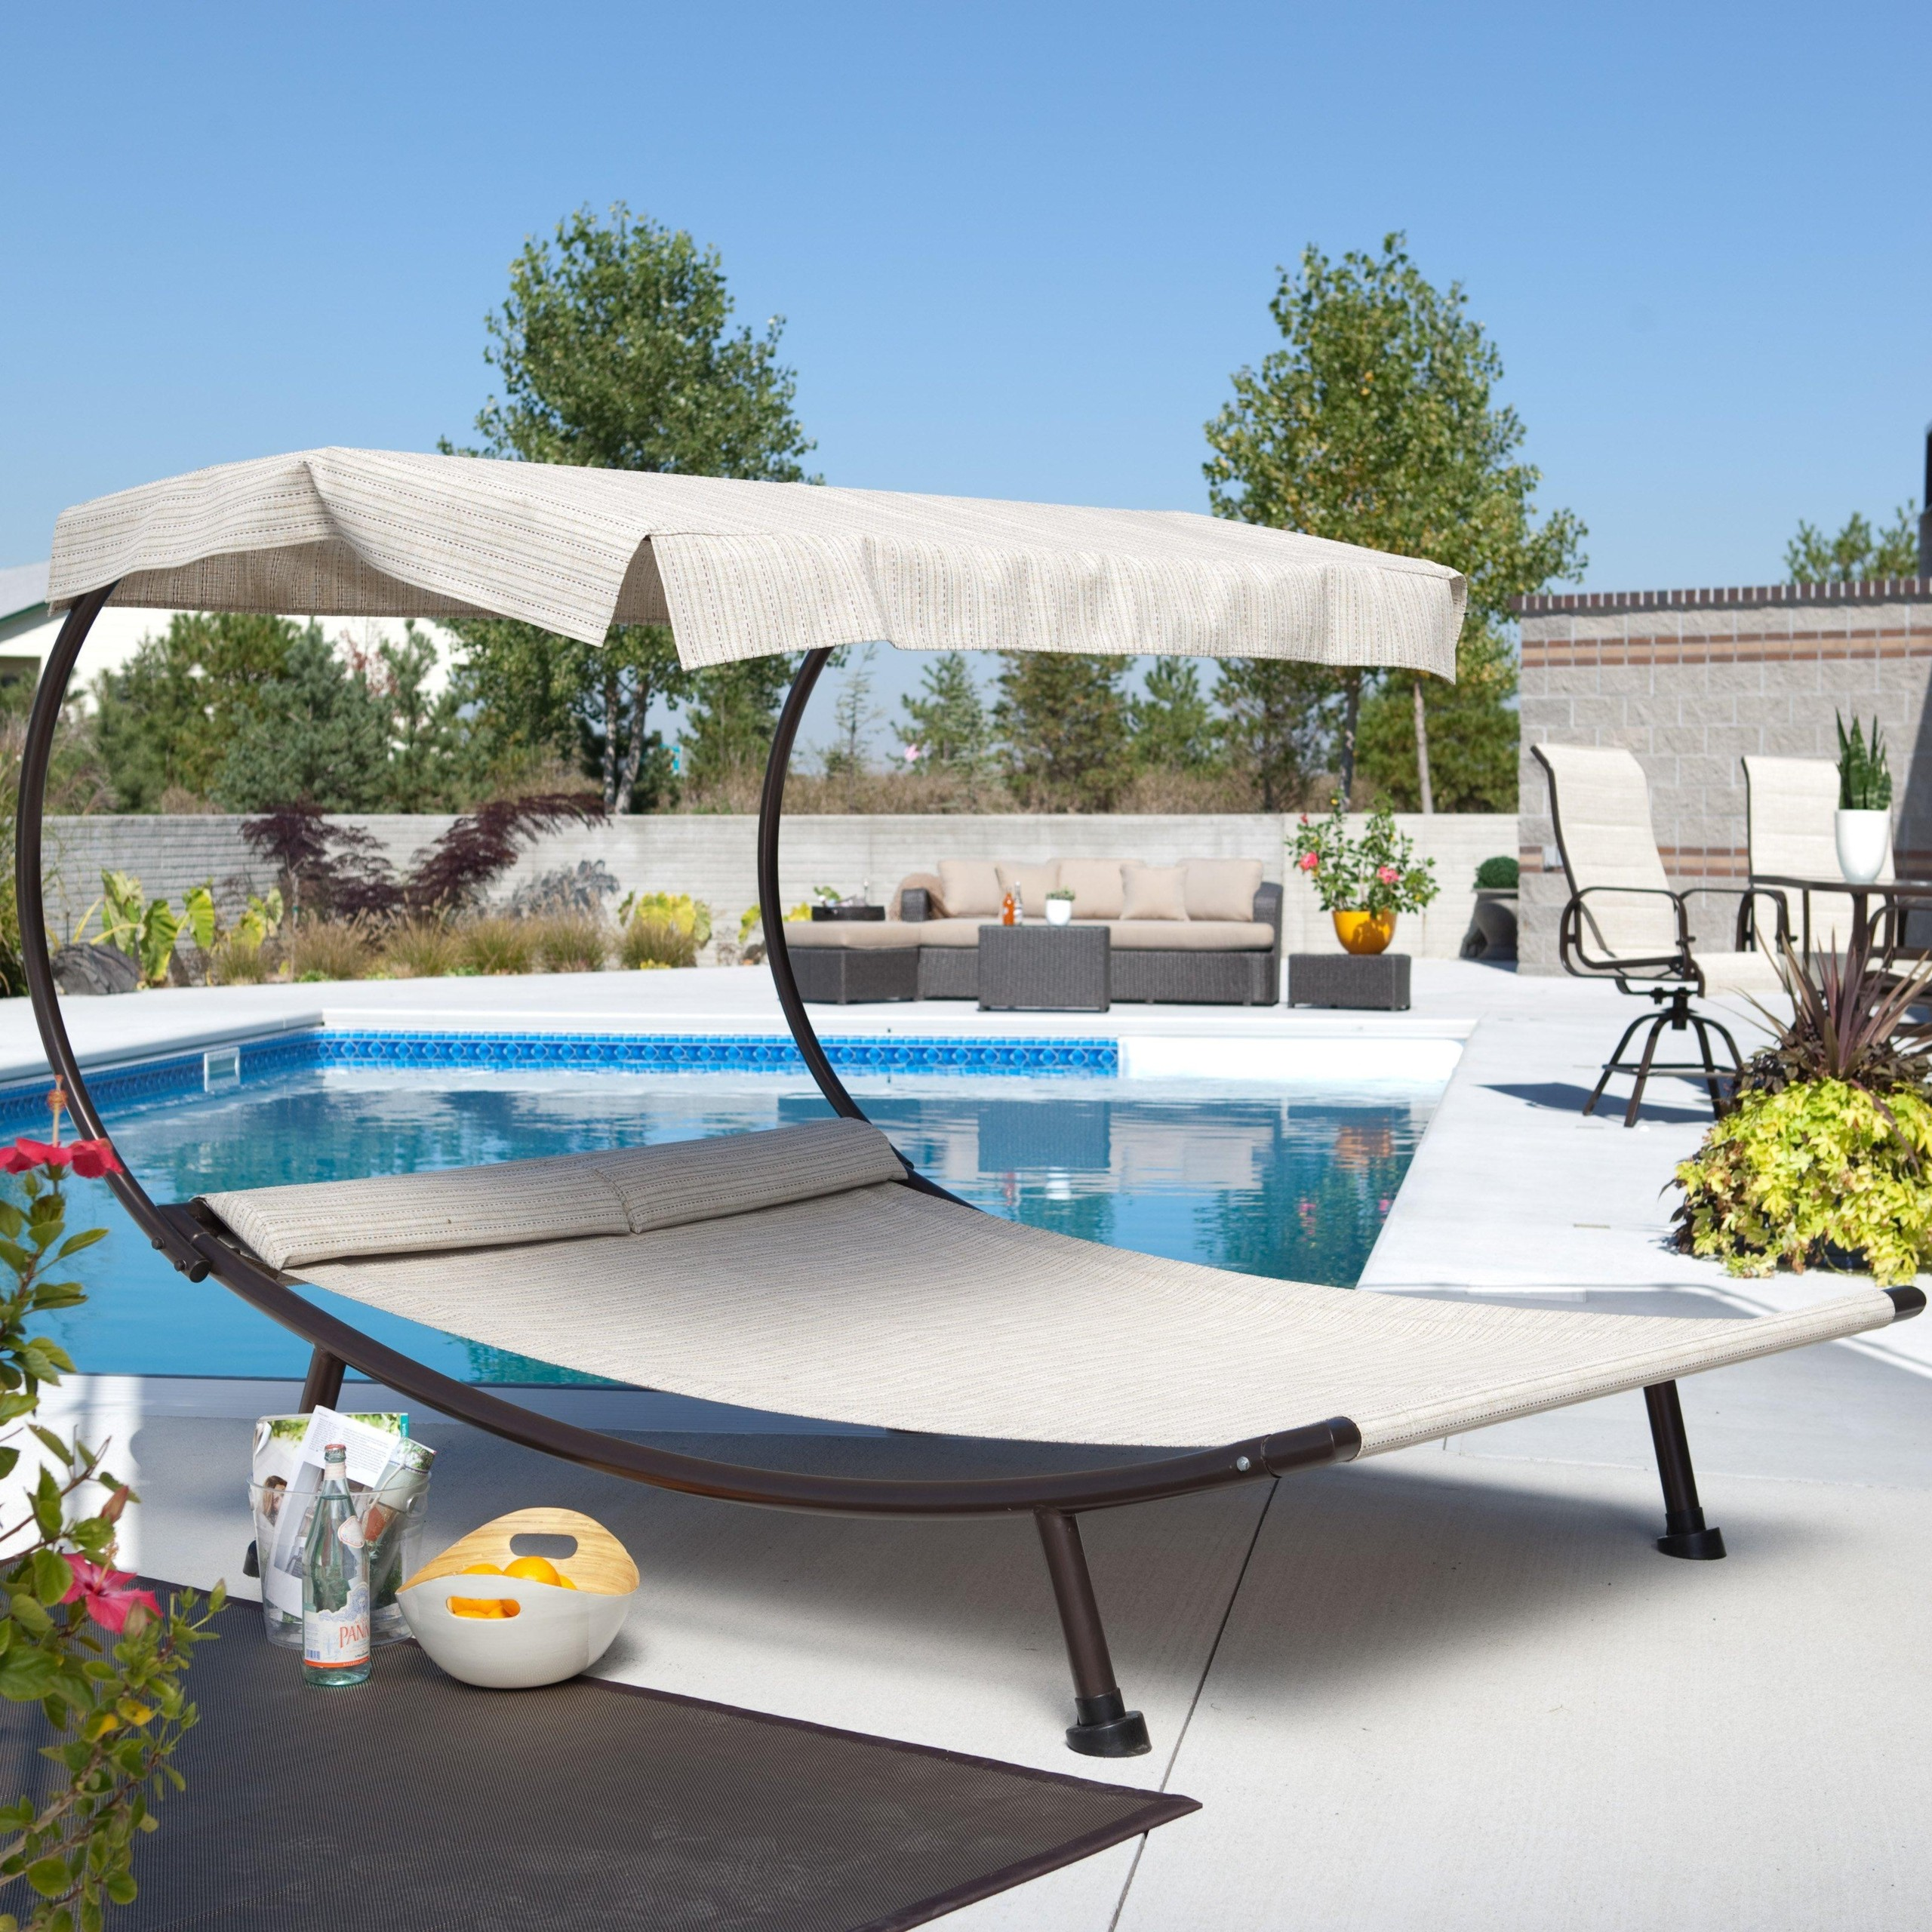 Genial Pool Lounge Furniture